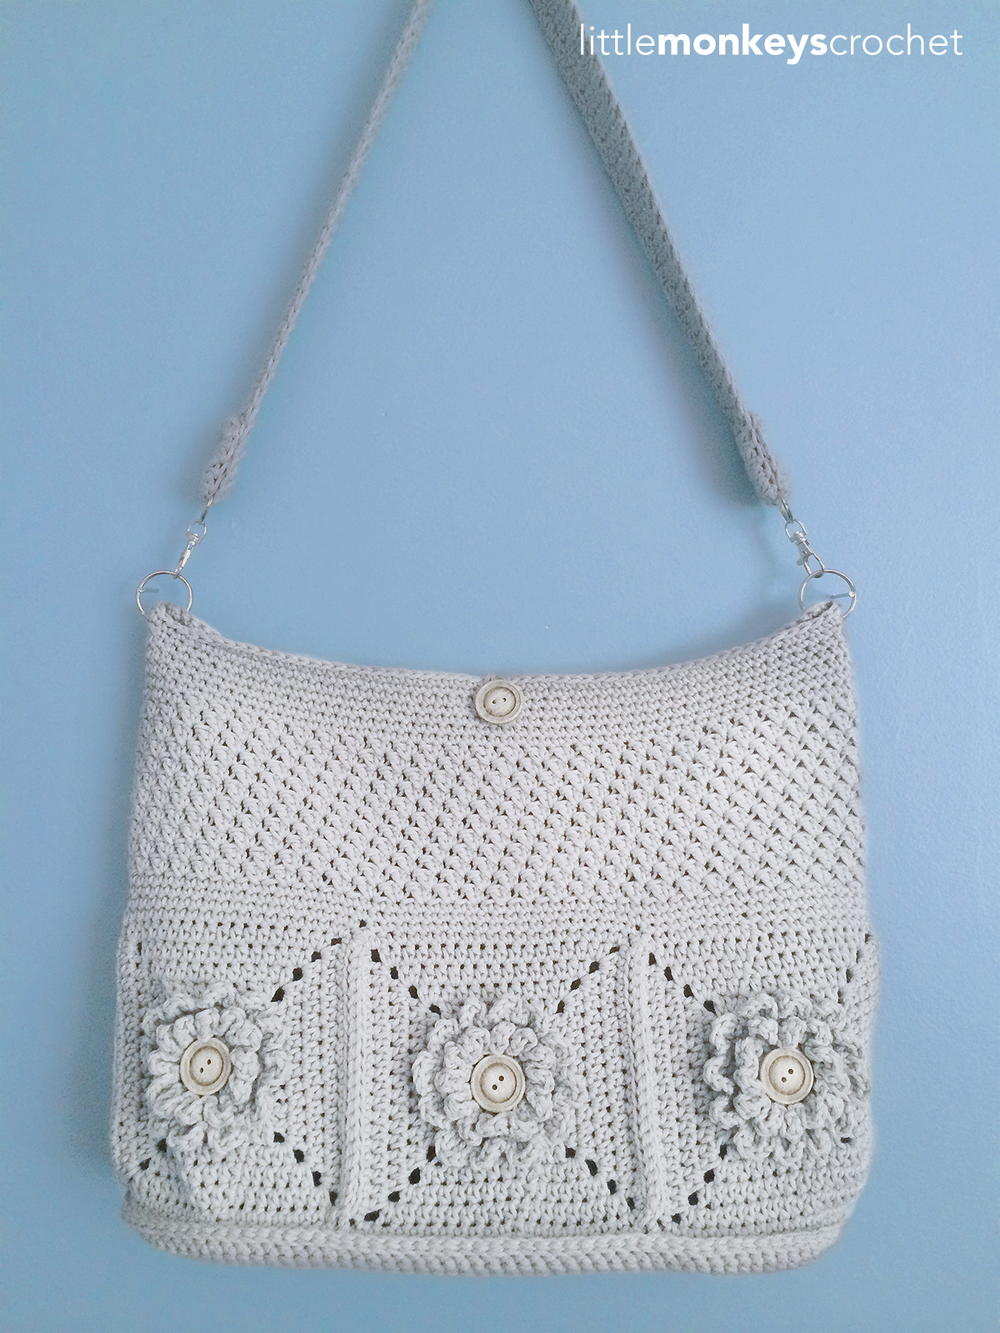 Crochet Shoulder Bag Pattern Free : Wildflower Shoulder Crochet Bag AllFreeCrochet.com